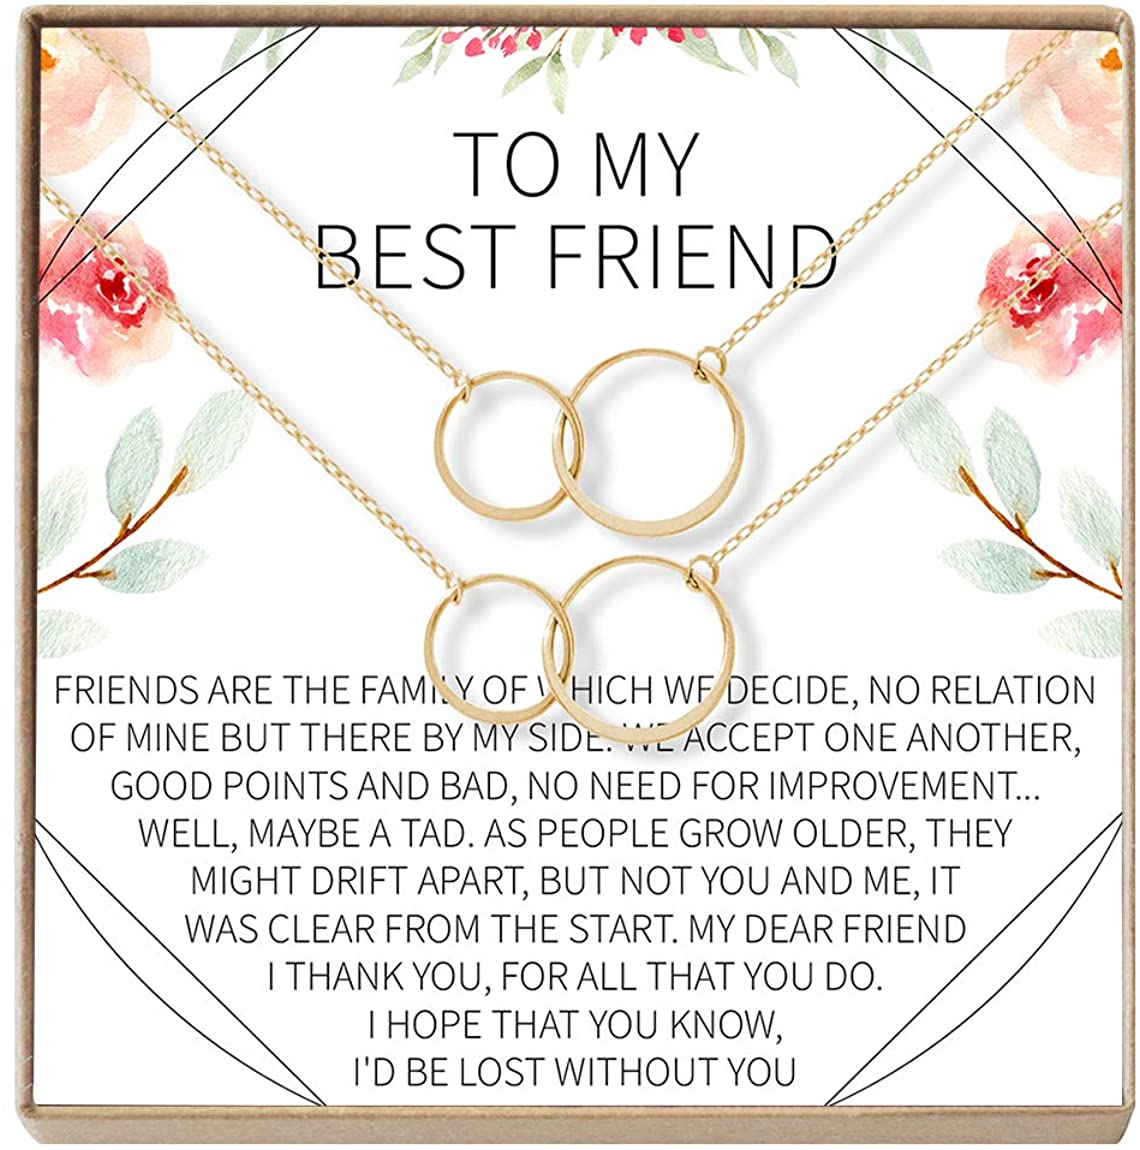 Best Friend Necklace - Heartfelt Card & Jewelry Gift for Birthday, Holiday & More